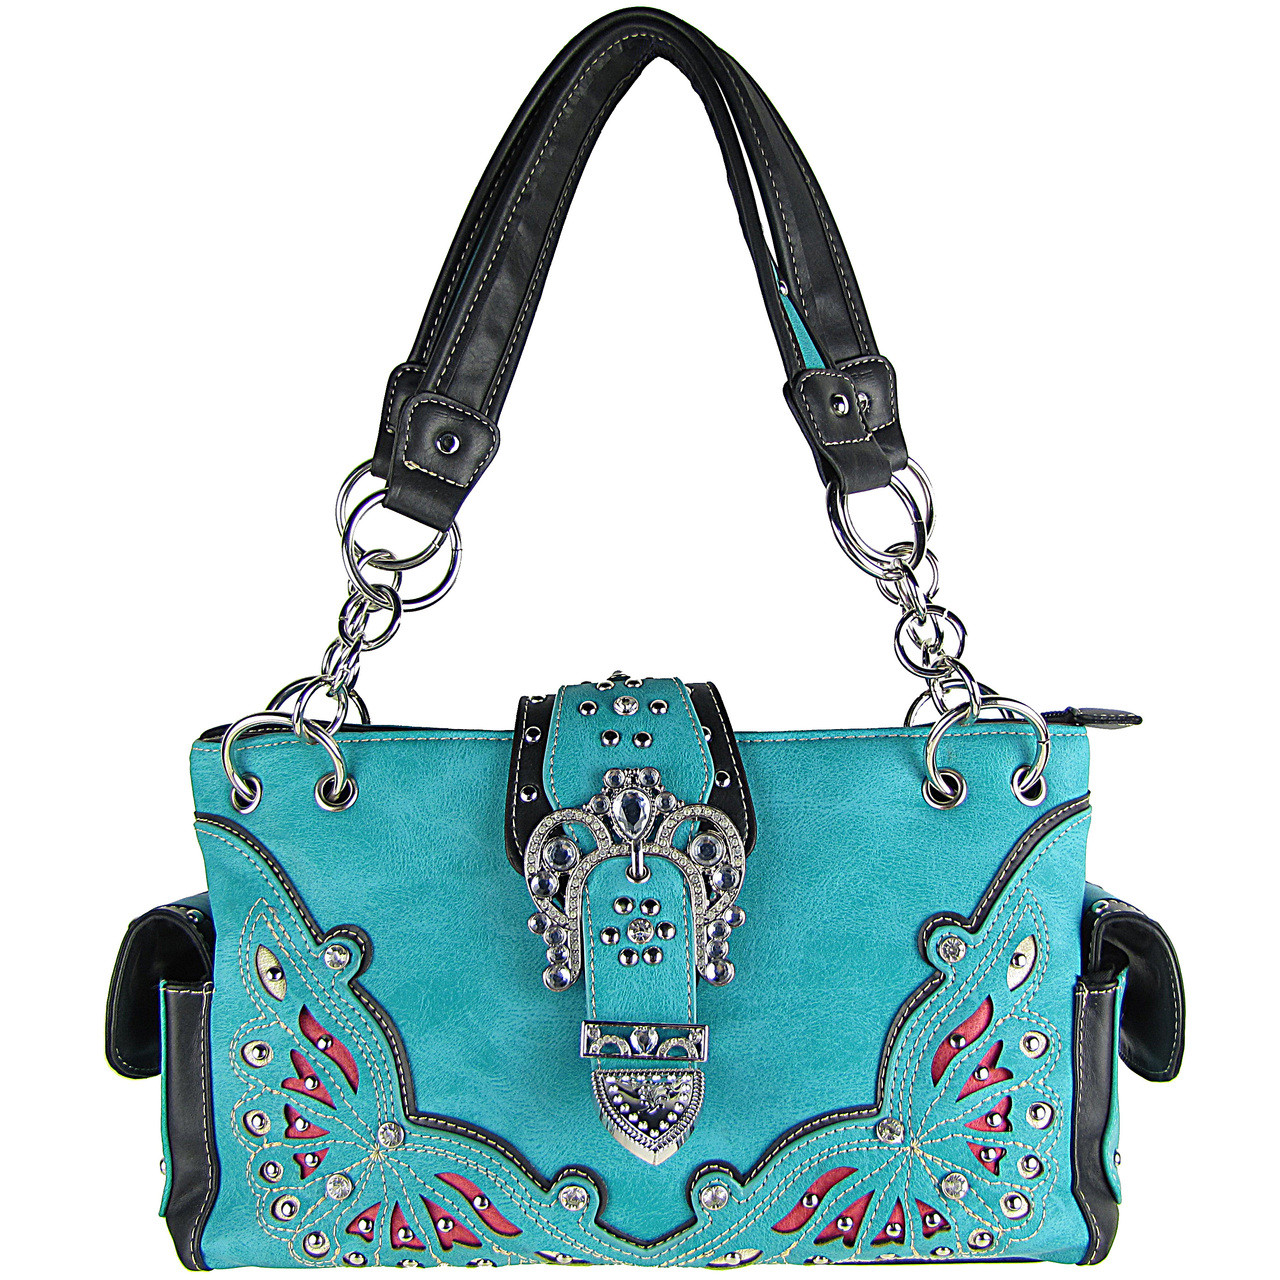 TURQUOISE RHINESTONE BUCKLE LOOK SHOULDER HANDBAG HB1-39W70-1TRQ